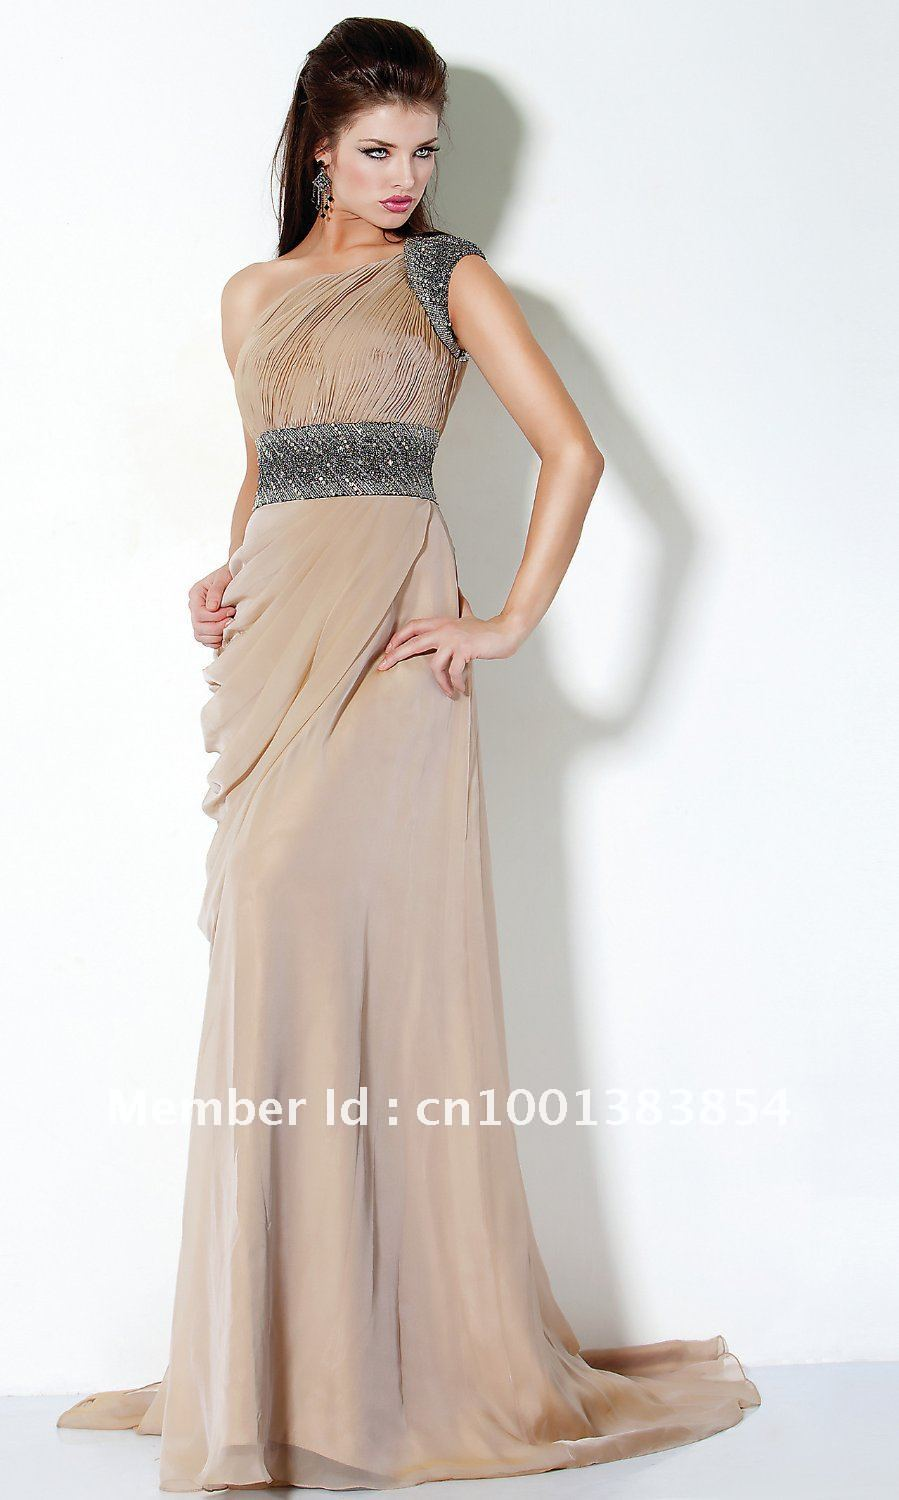 Fashion style Cocktail long dresses for lady